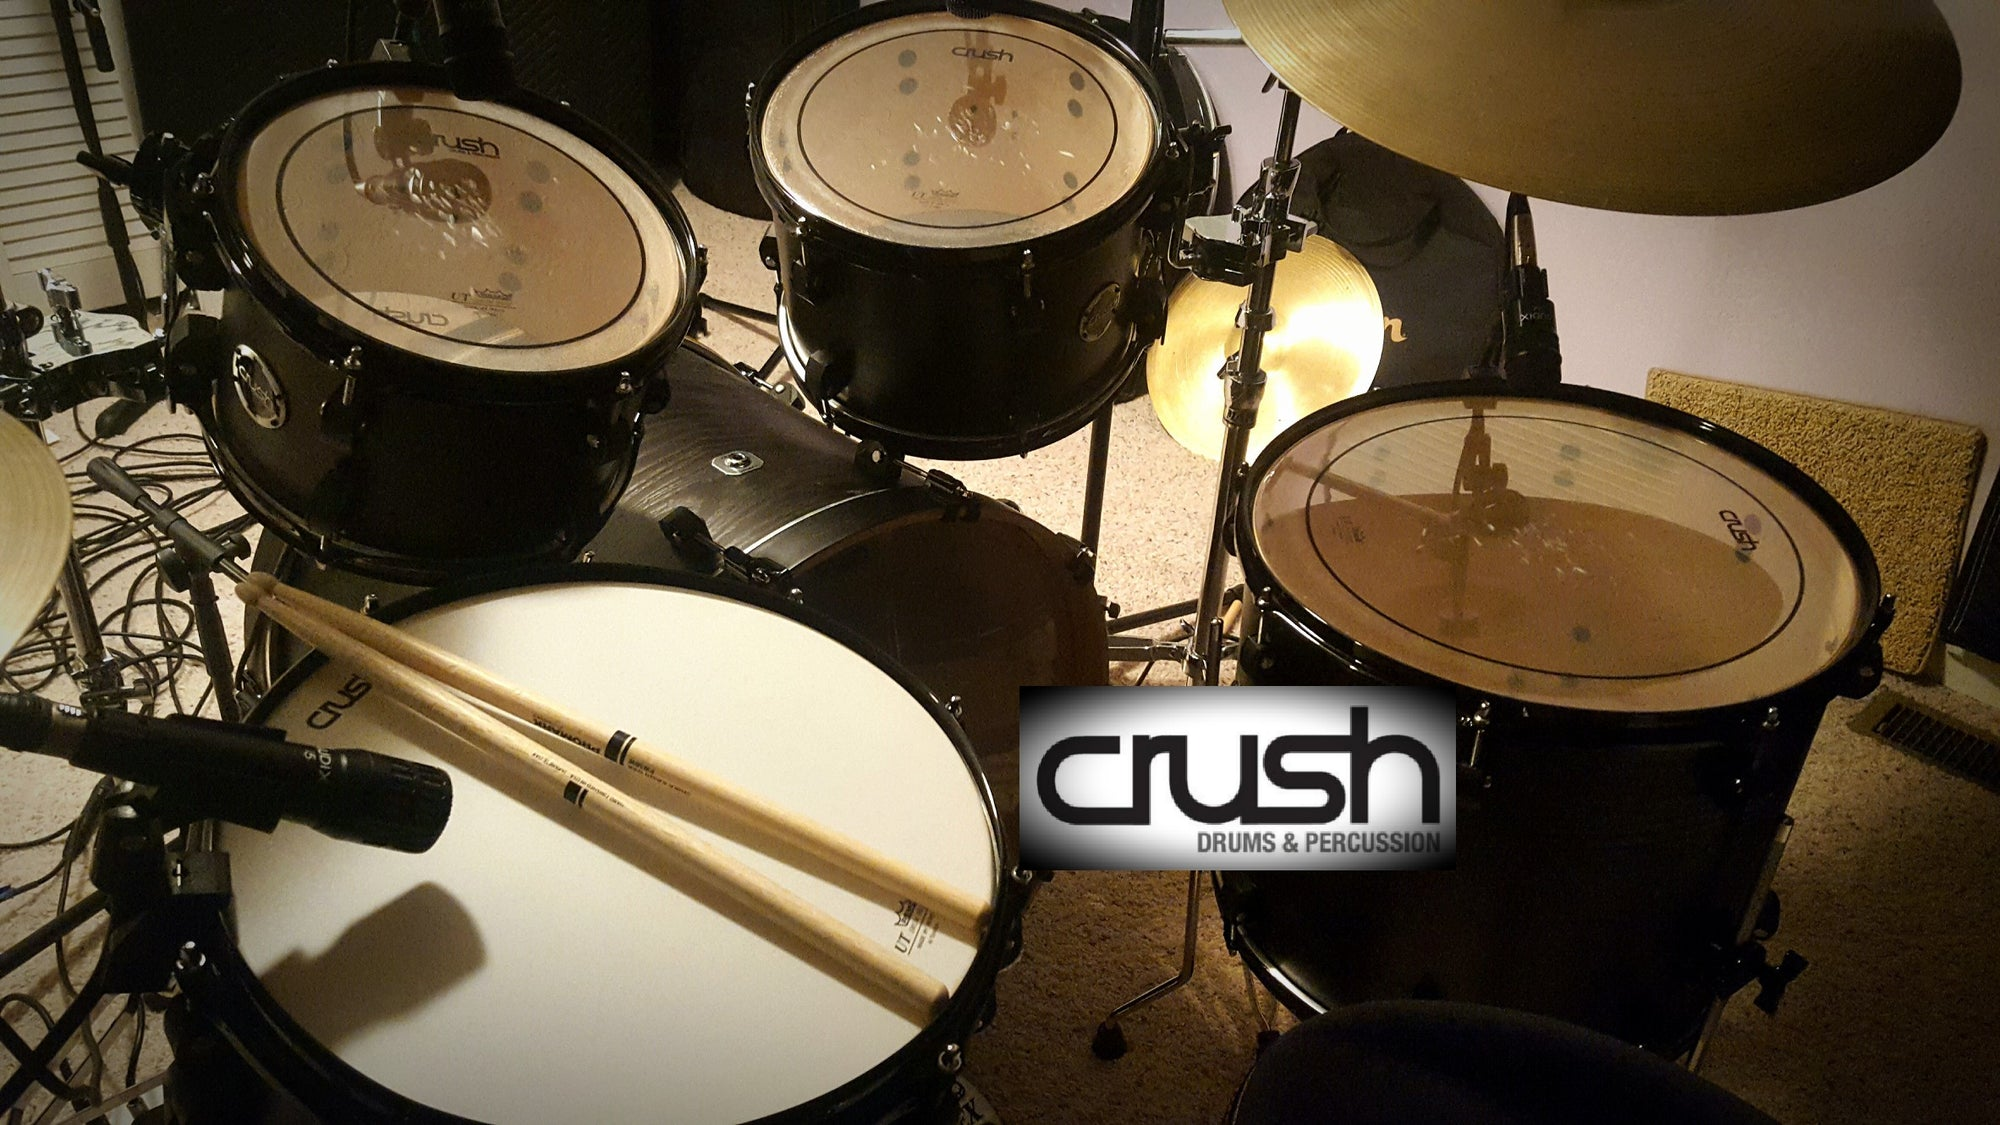 Drum Kit Review - Crush Chameleon Ash - Free Drum Samples Inside!